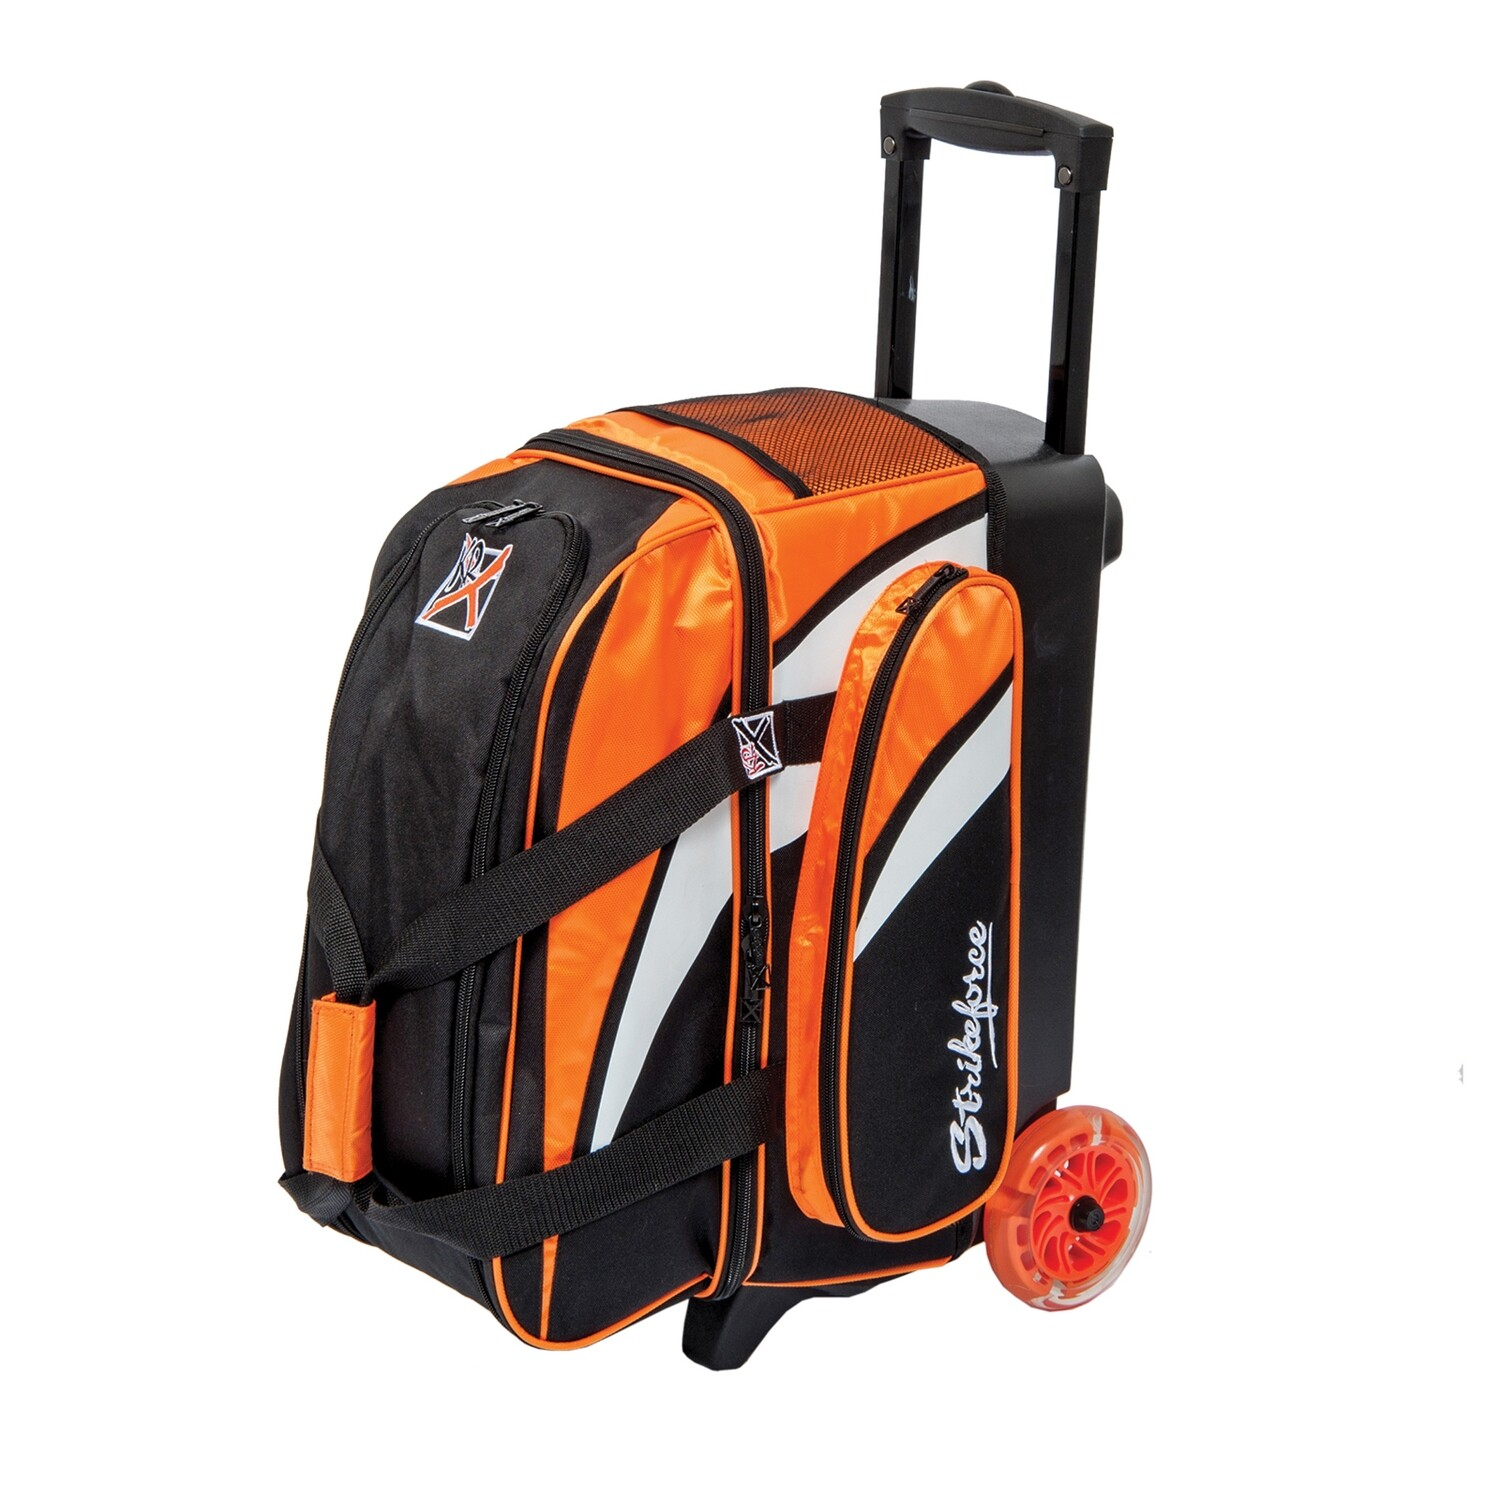 KR Strikeforce Cruiser Orange/White/Black 2 Ball Roller Bowling Bag